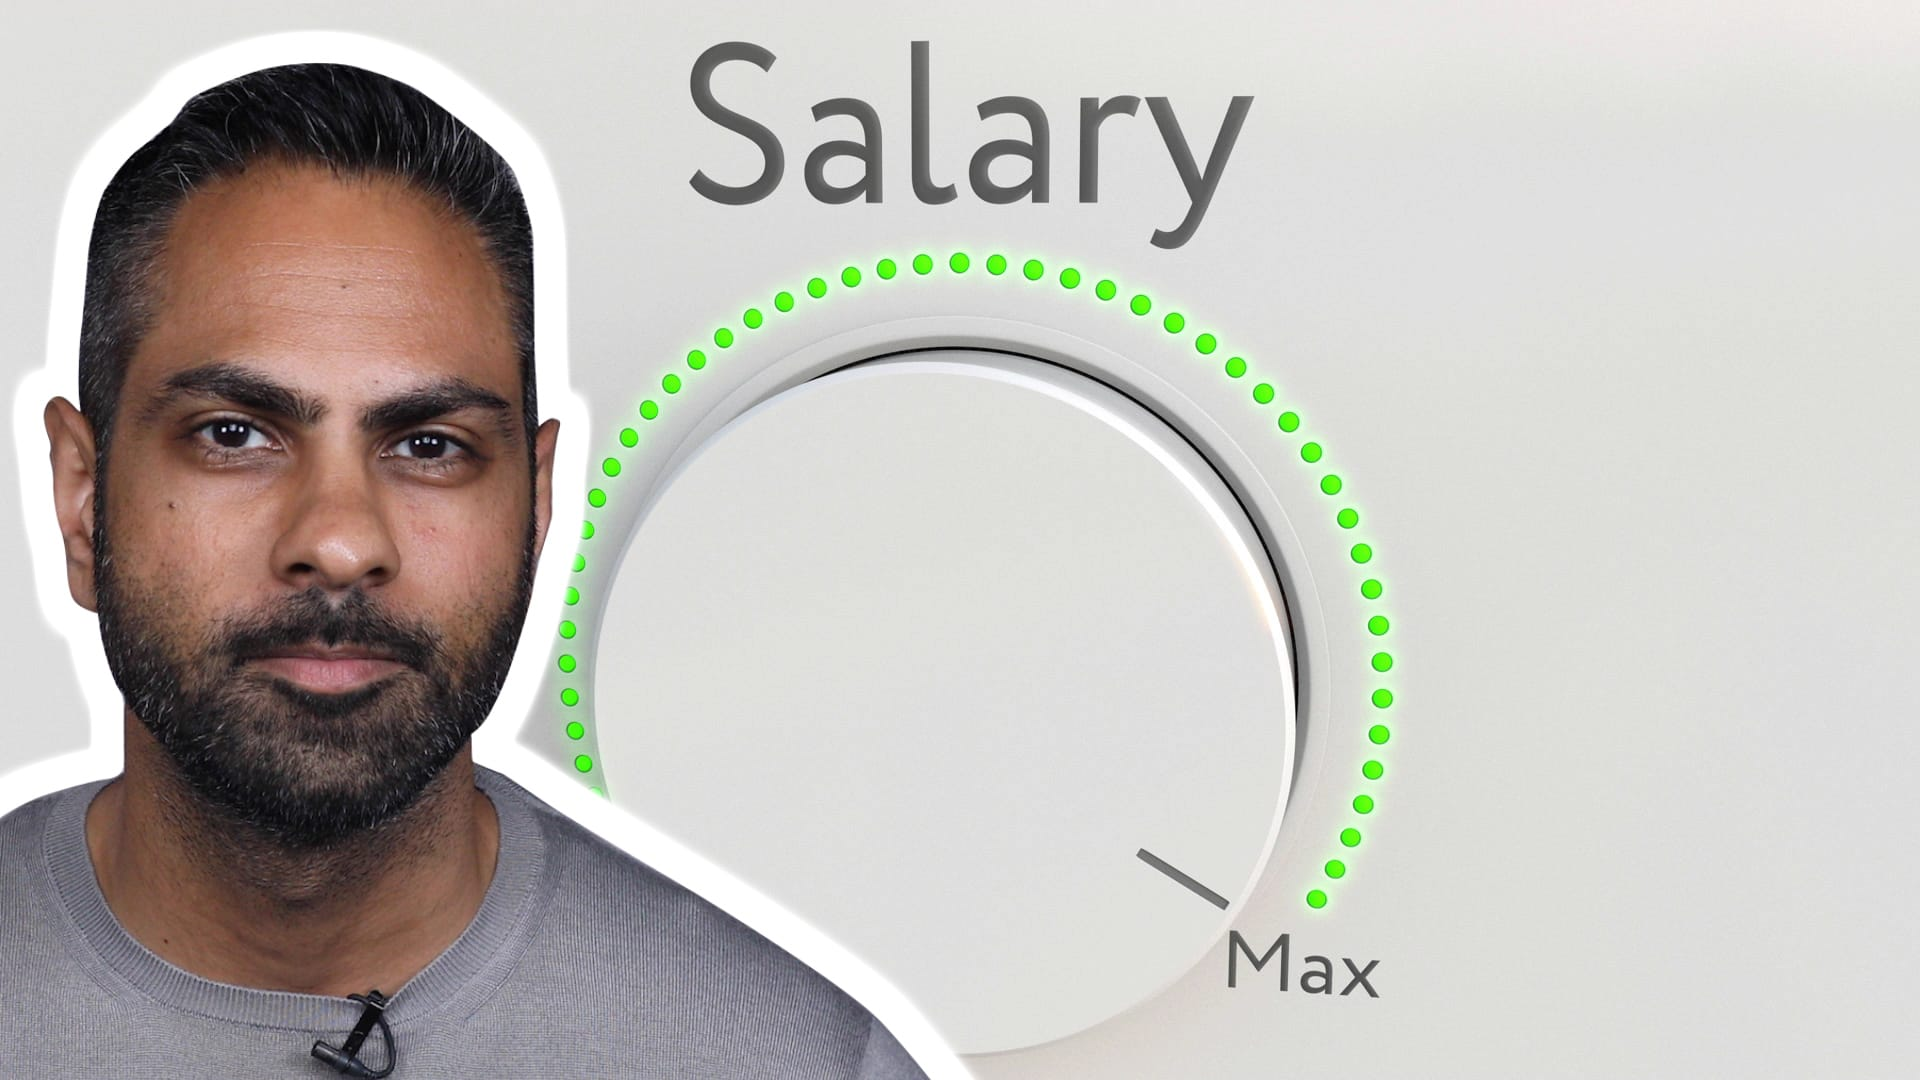 4 big salary negotiation mistakes can cost you, says Ramit Sethi